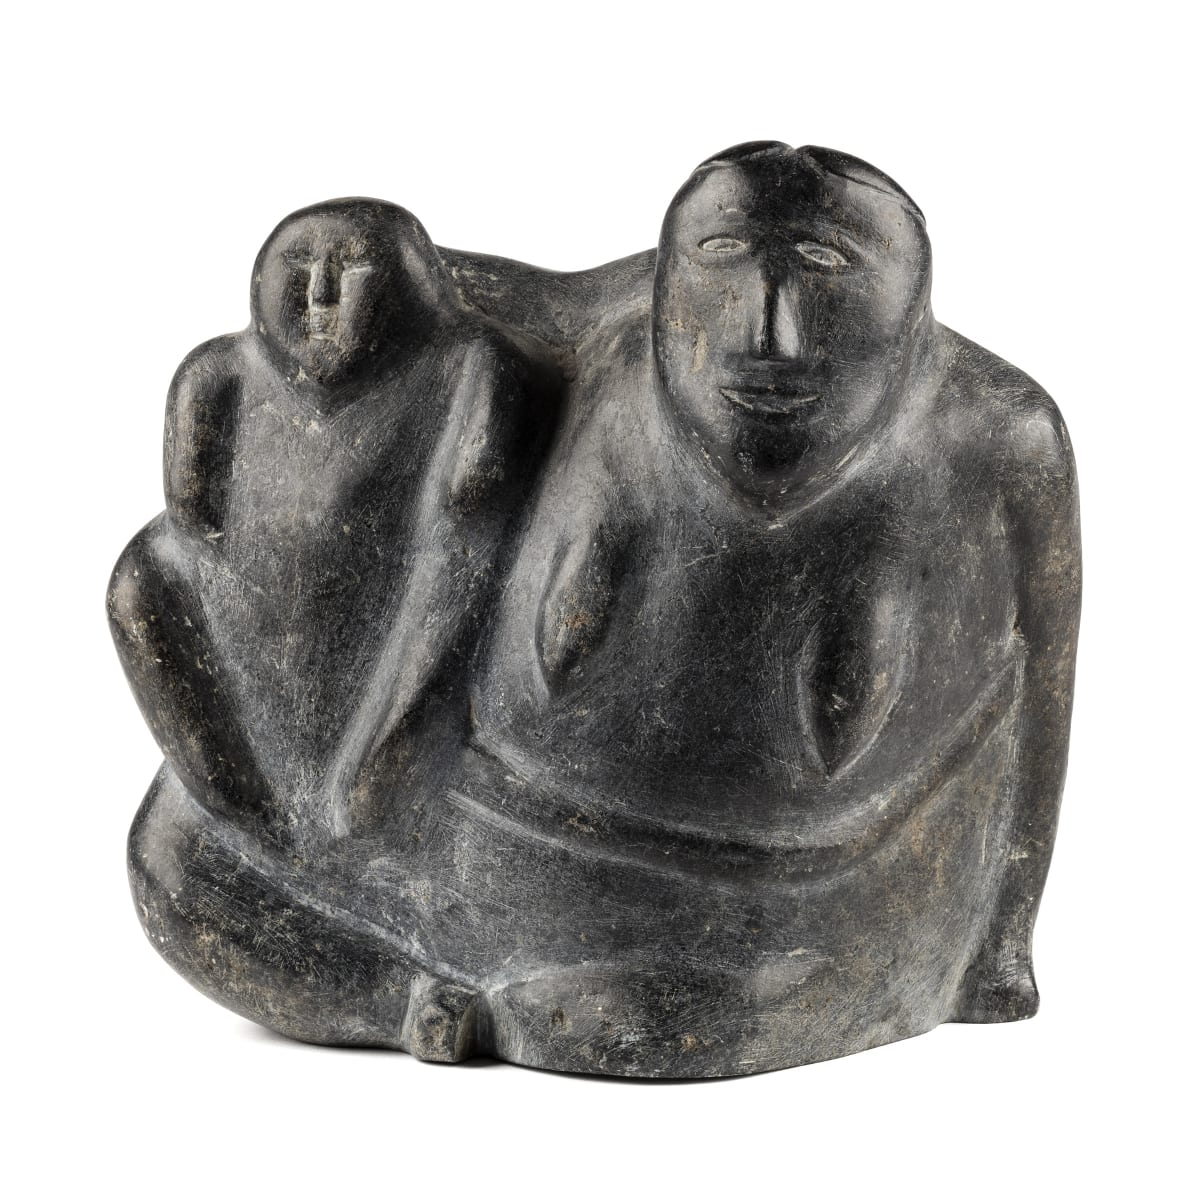 Attr.: John Attok (1906-1980) Arviat (Eskimo point) Mother and Child, c. 1965-8 REALIZED: $3,120